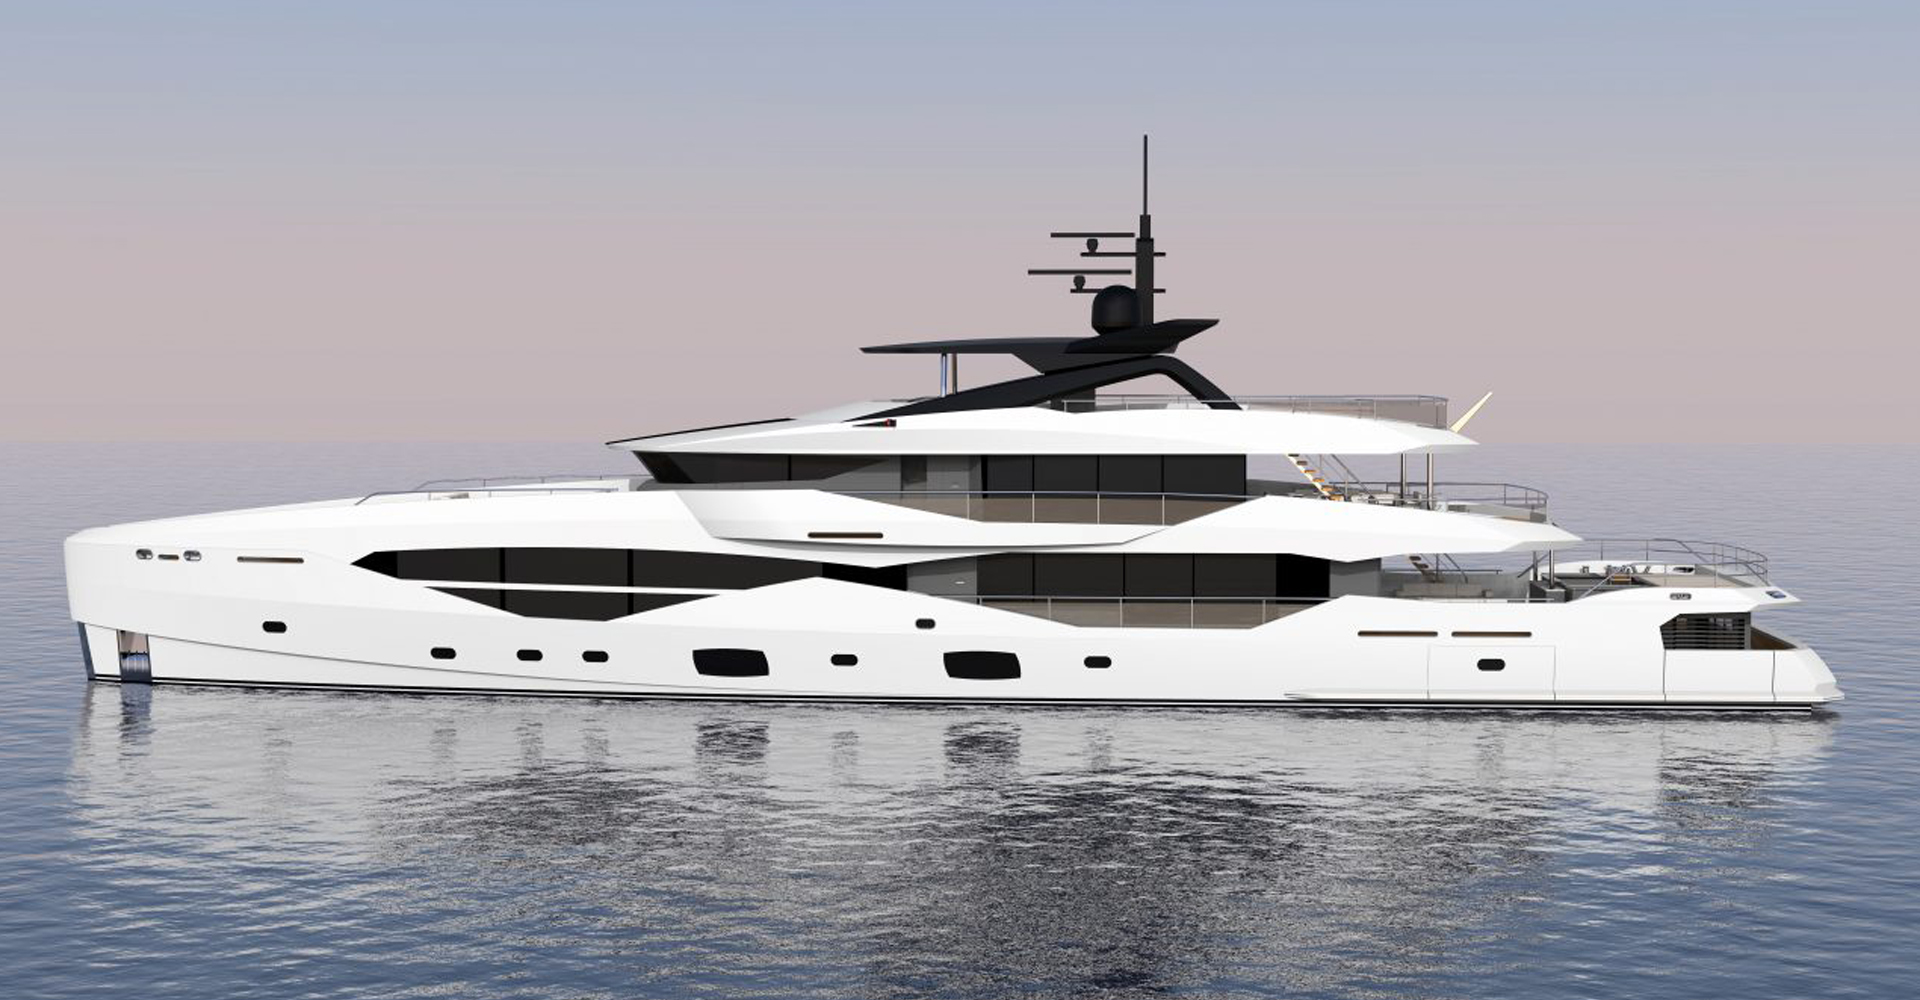 New Sunseeker 161 superyacht - Design Unlimited